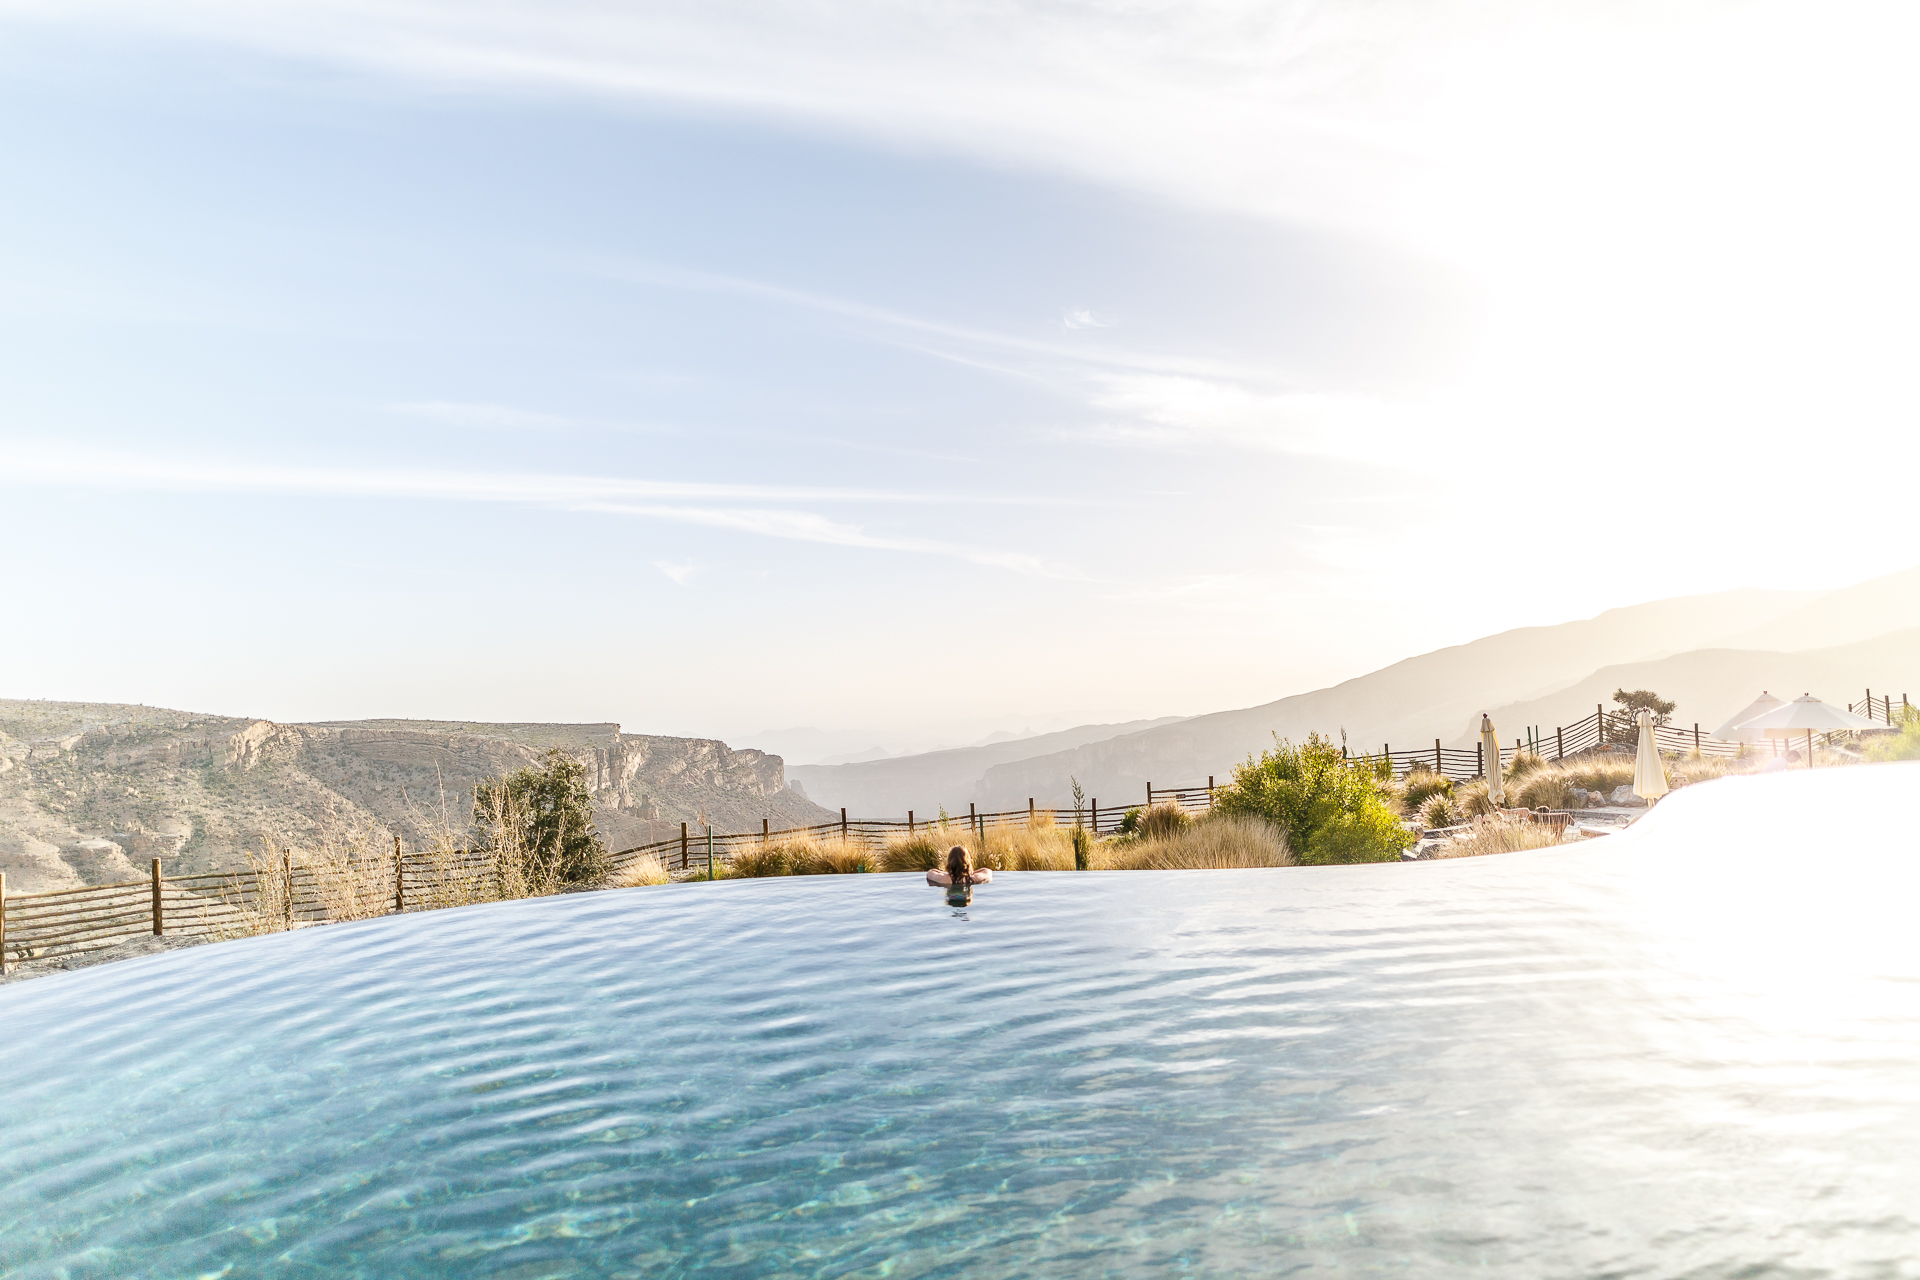 Alila-Jabal-Akhdar-Pool-1